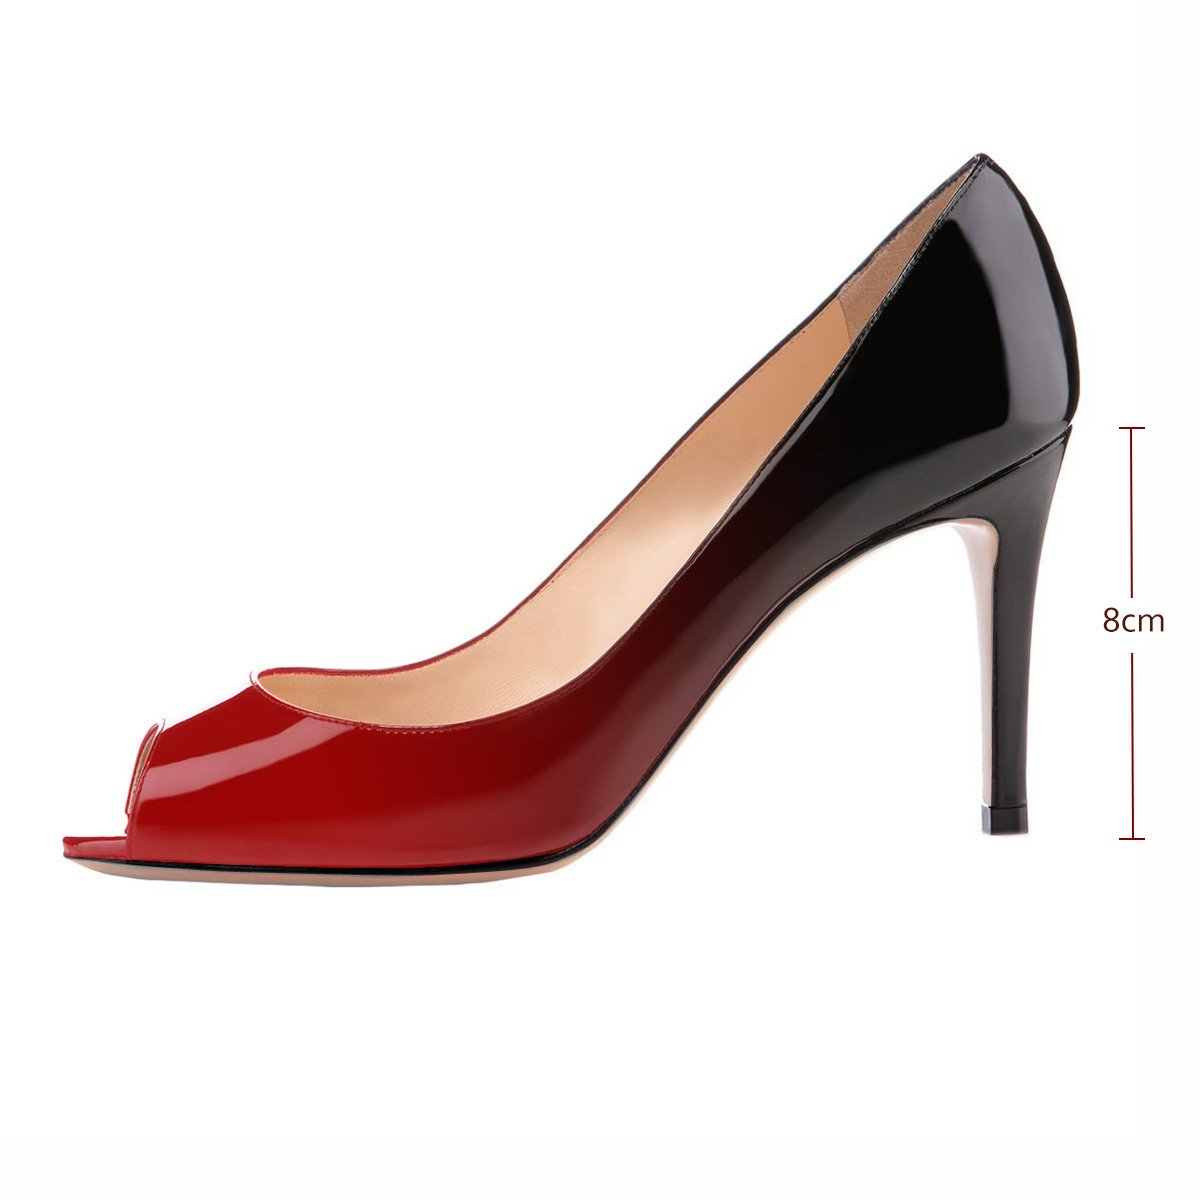 Eldof Women Peep Toe Pumps Mid-Heel Pumps Formal Wedding Bridal Classic Heel Open Toe Stiletto B07F8M2B3V 10.5 B(M) US|Red-black